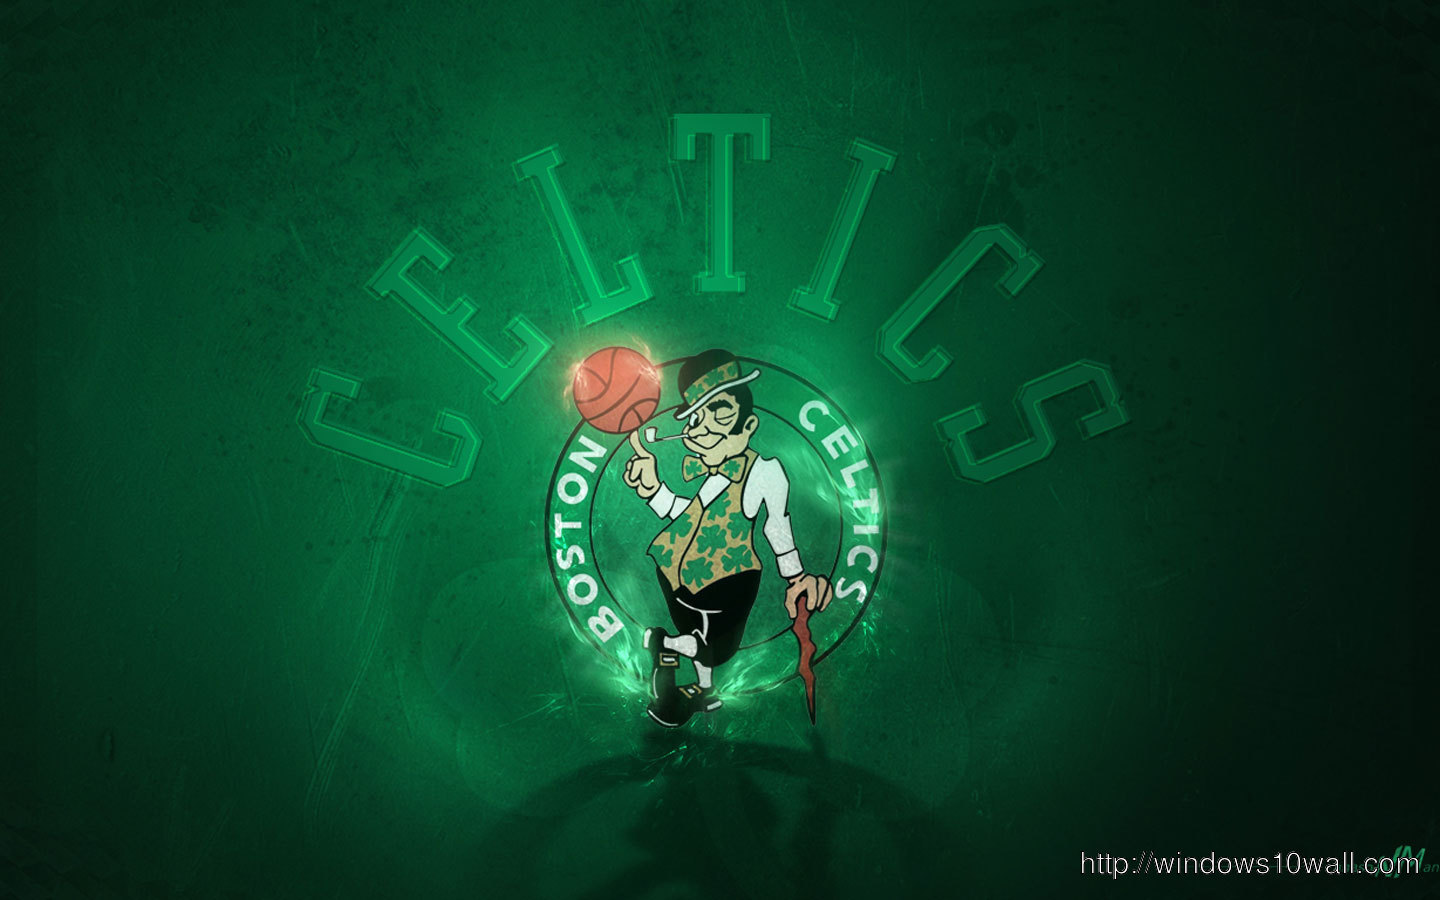 Iphone wallpaper emily ratajkowski - Boston Celtics Logo Hd Wallpaper Windows 10 Wallpapers